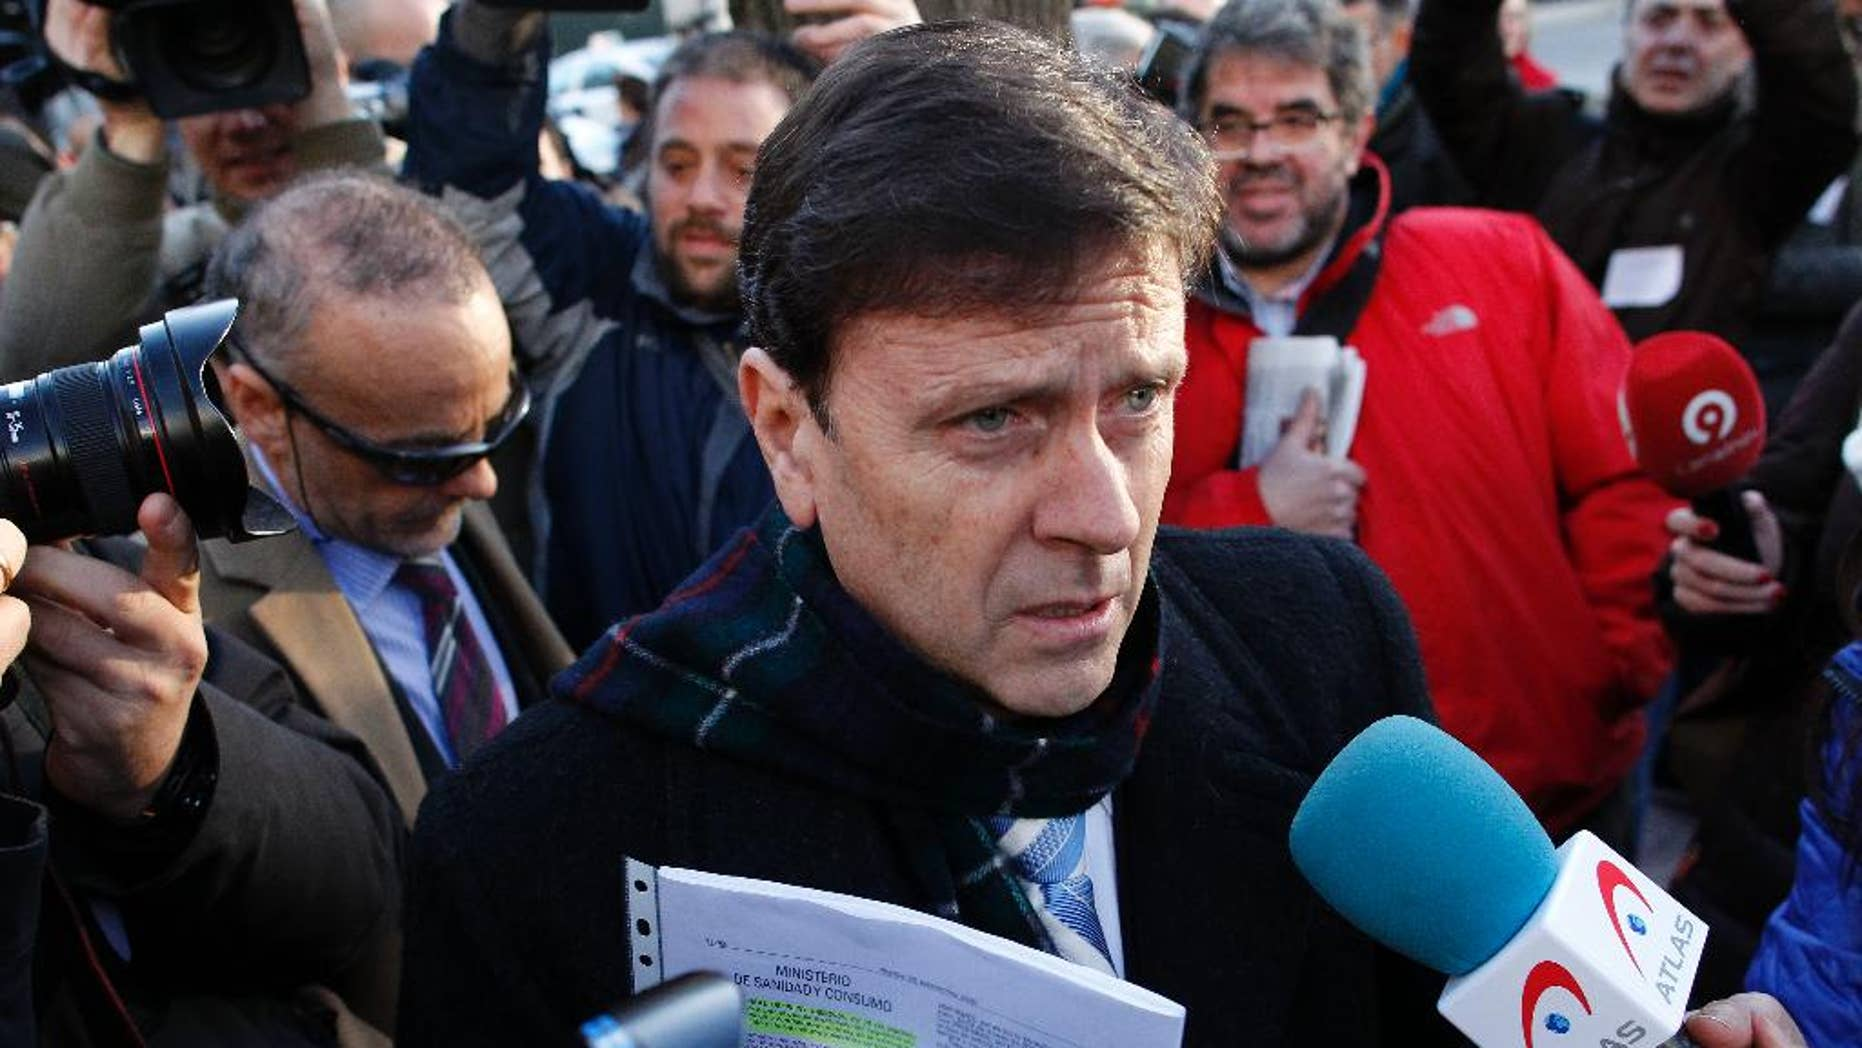 FILE - In this Monday, Jan. 28, 2013 file photo, Doctor Eufemiano Fuentes arrives at a court house in Madrid, Spain.  A court was set to rule Tuesday June 14, 2016, on whether hundreds of blood bags that are key evidence in one of Spain's worst doping scandals should be destroyed or handed over to authorities for investigation. (AP Photo/Andres Kudacki, File)